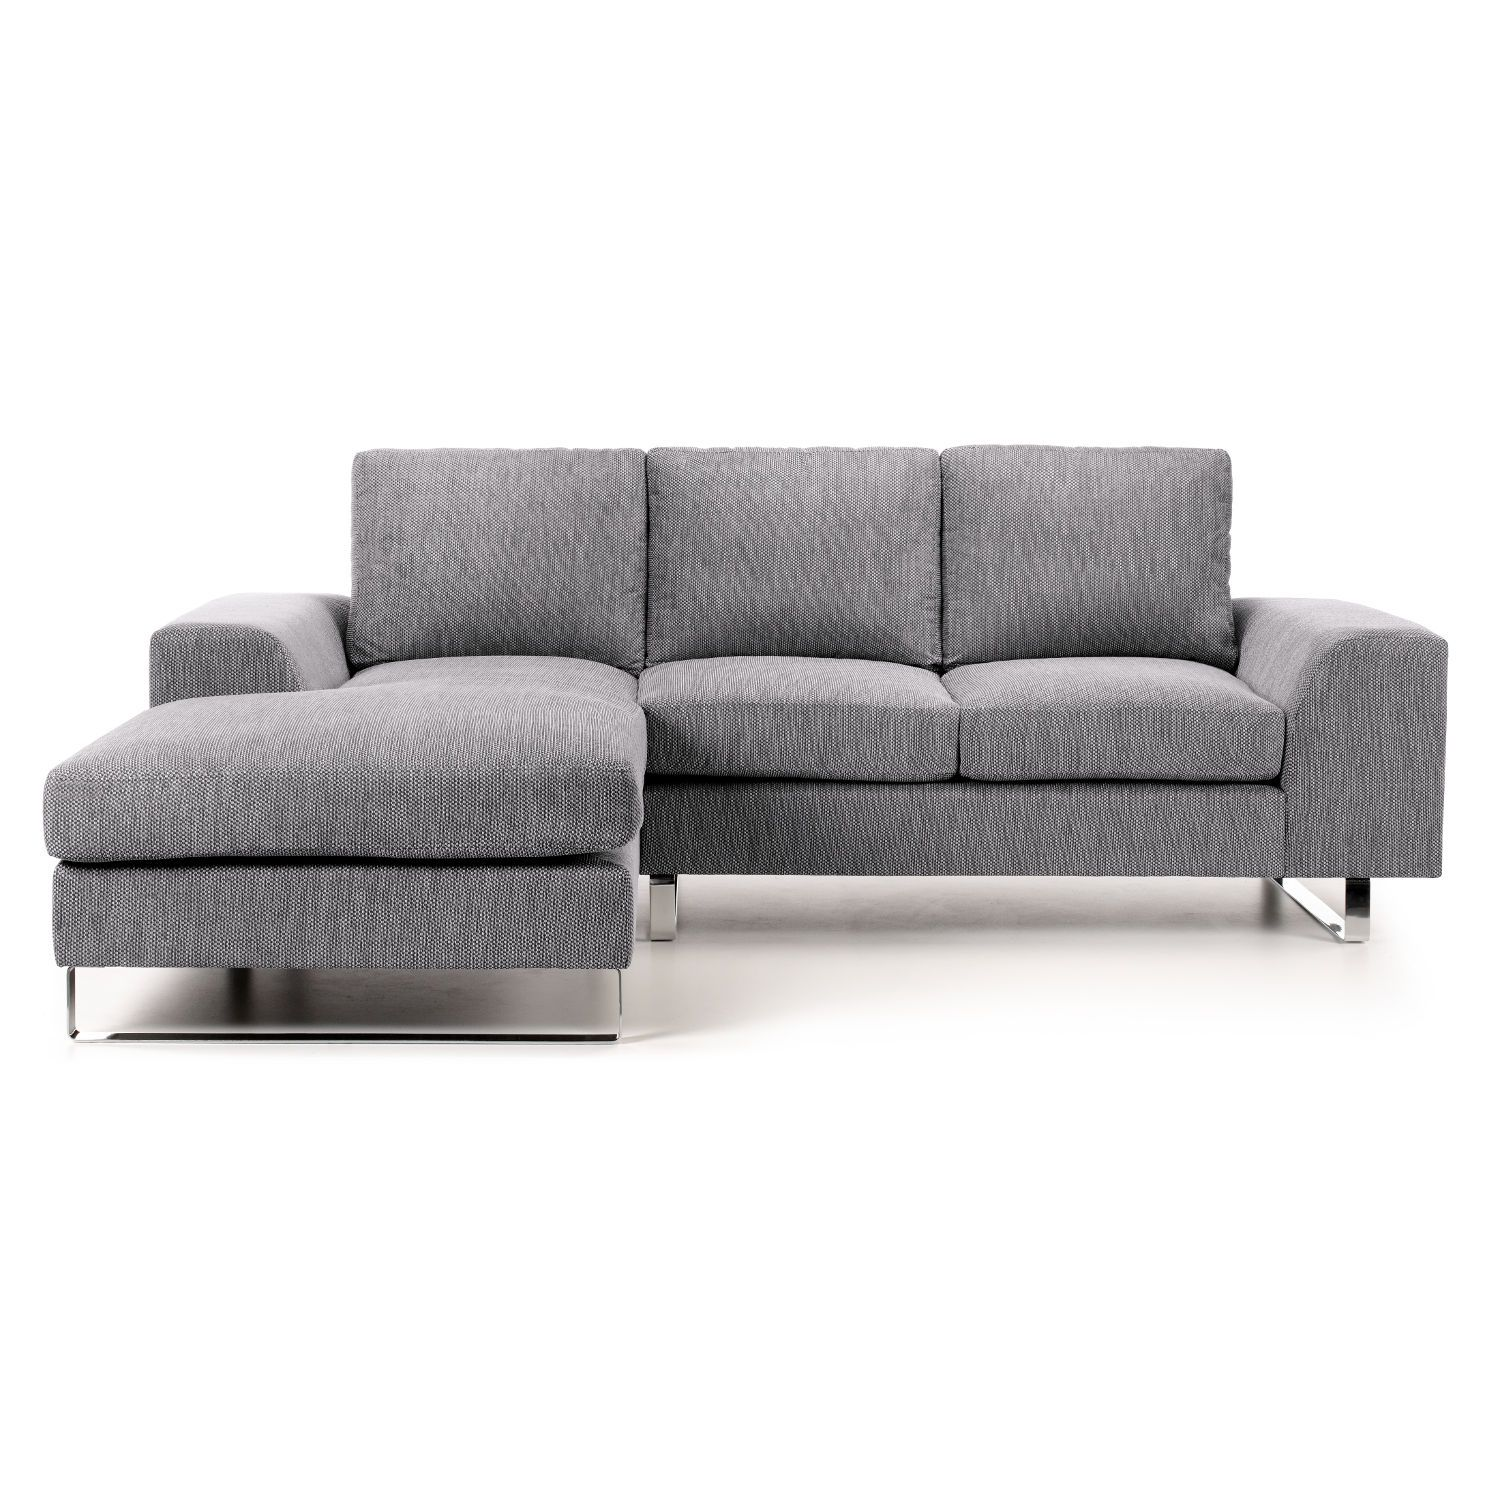 Sofas Delivered Next Day Pictures Of With Pillows Delivery 14 Money Back Guarantee Jamba